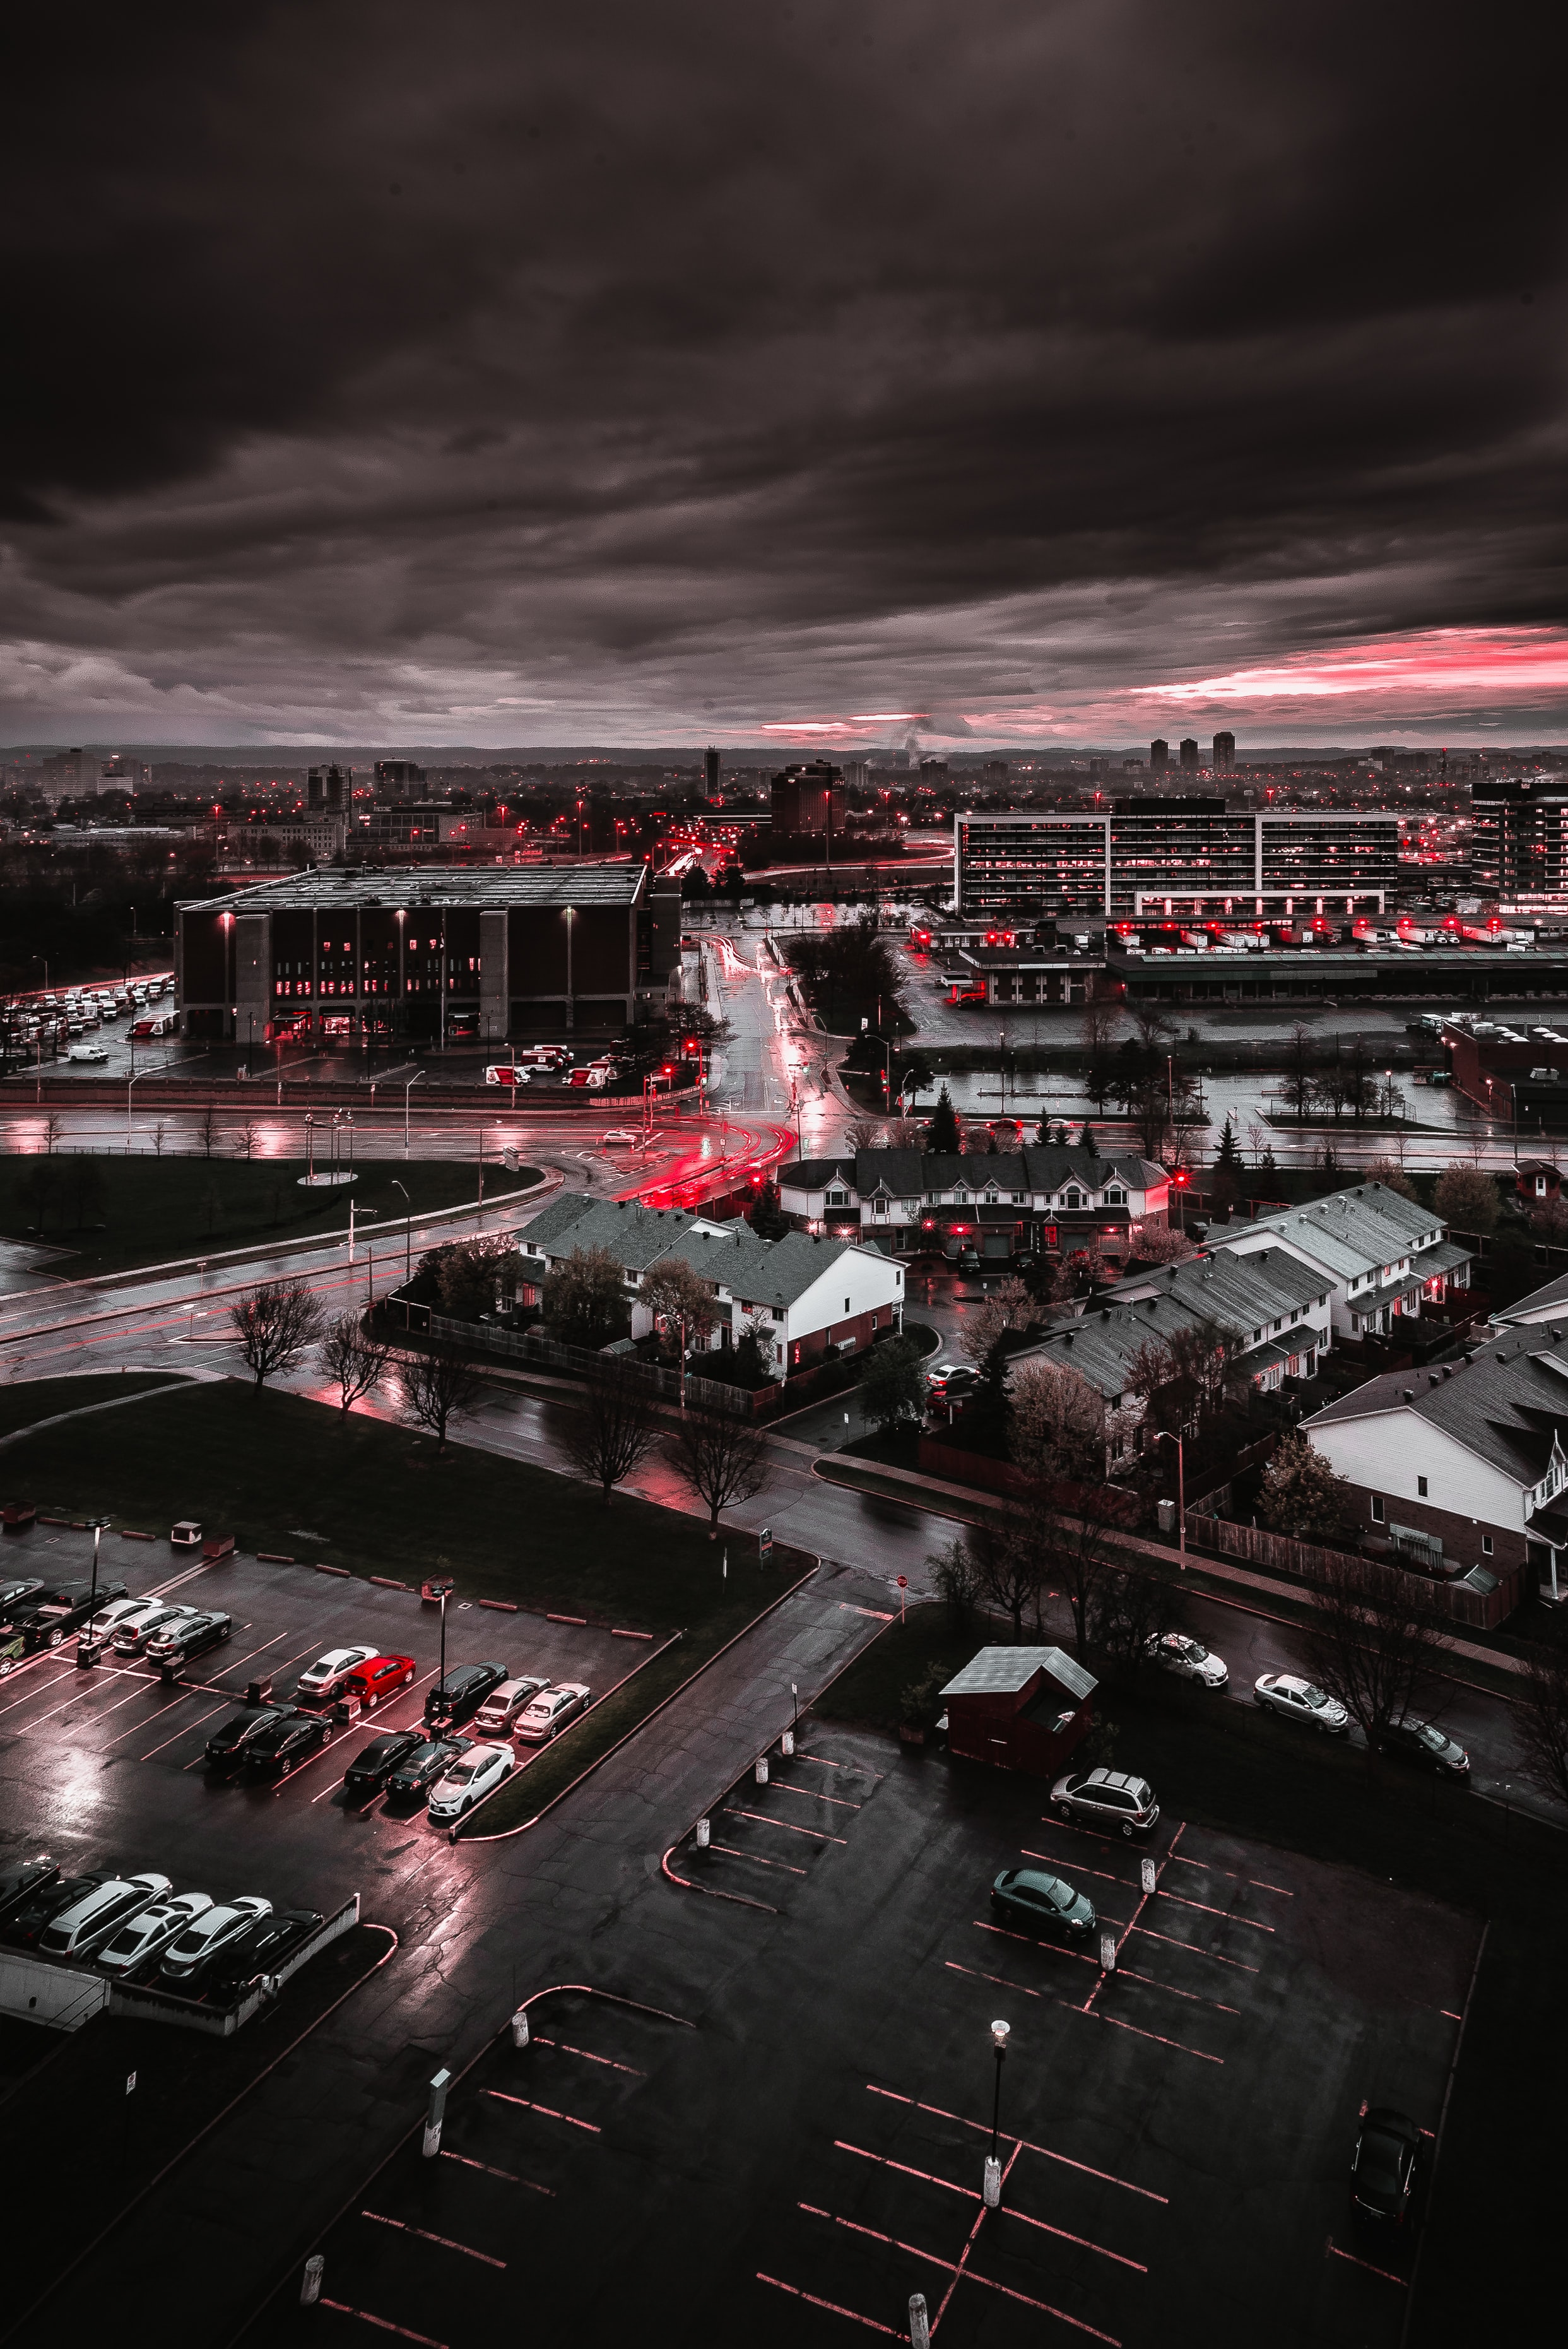 city buildings and cars on grayscale photography